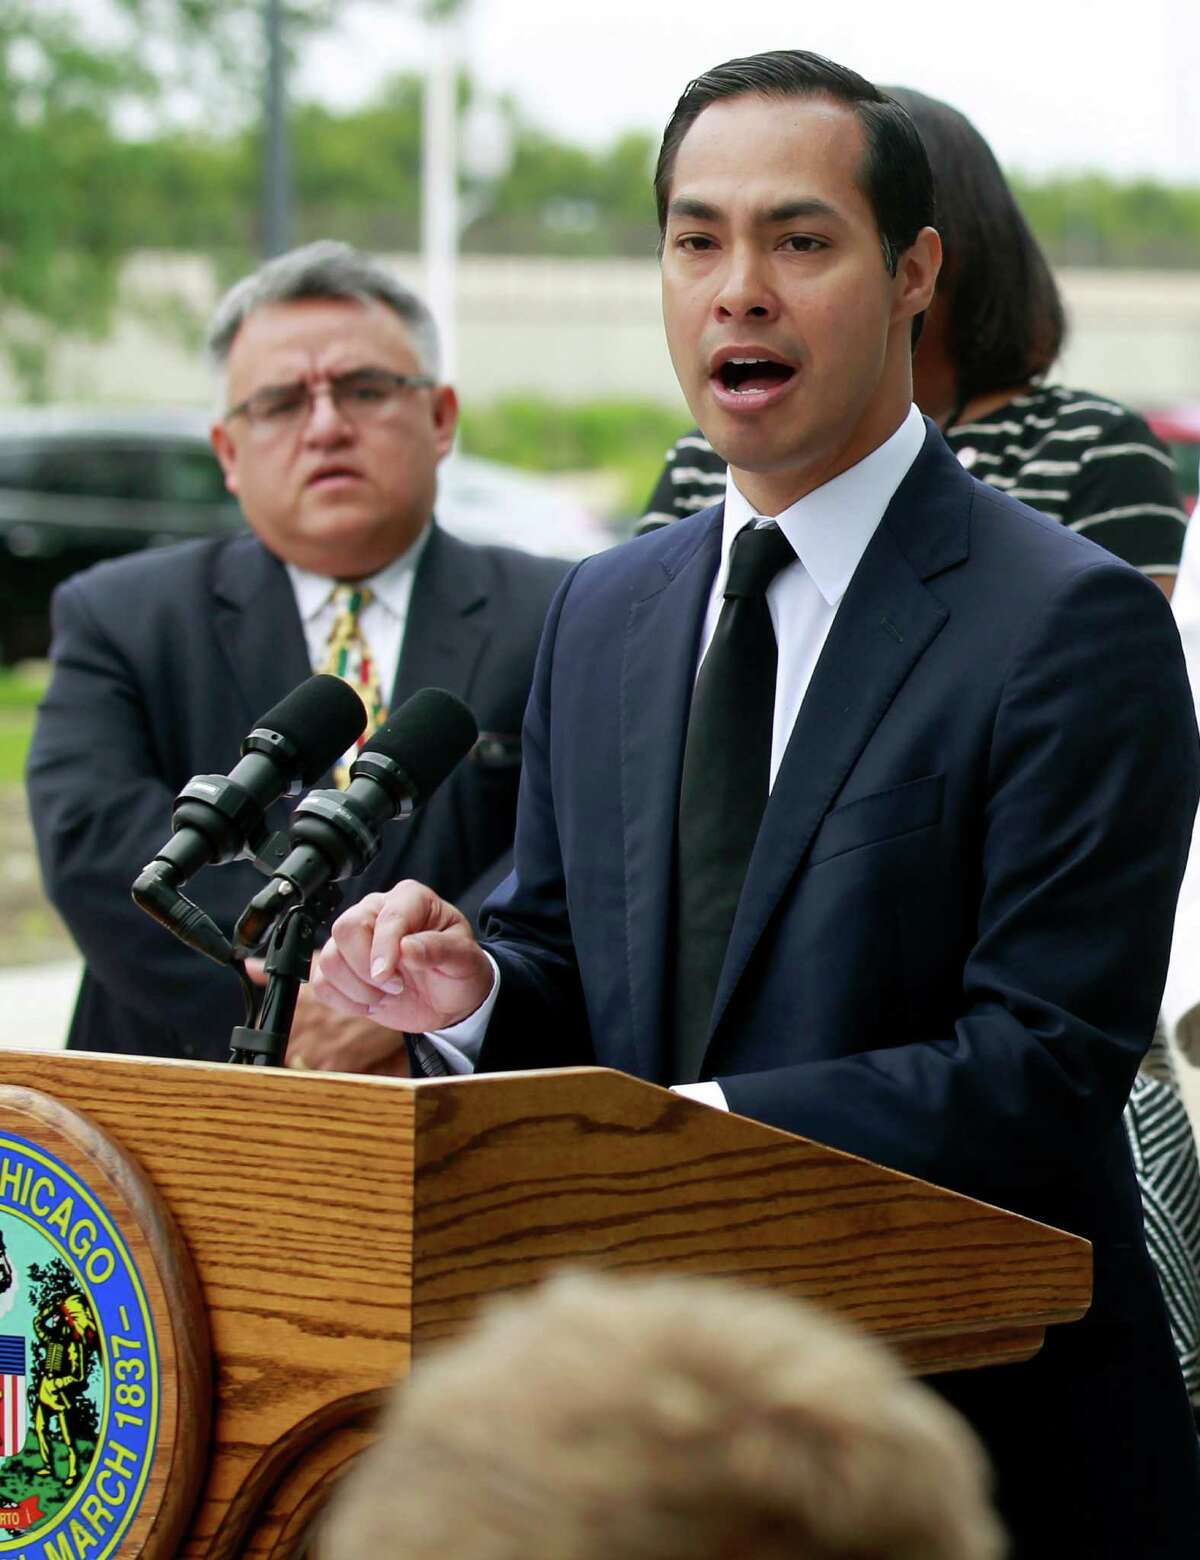 Housing and Urban Development Secretary Julian Castro announces a policy change at a news conference Wednesday, July 8, 2015, in Chicago.